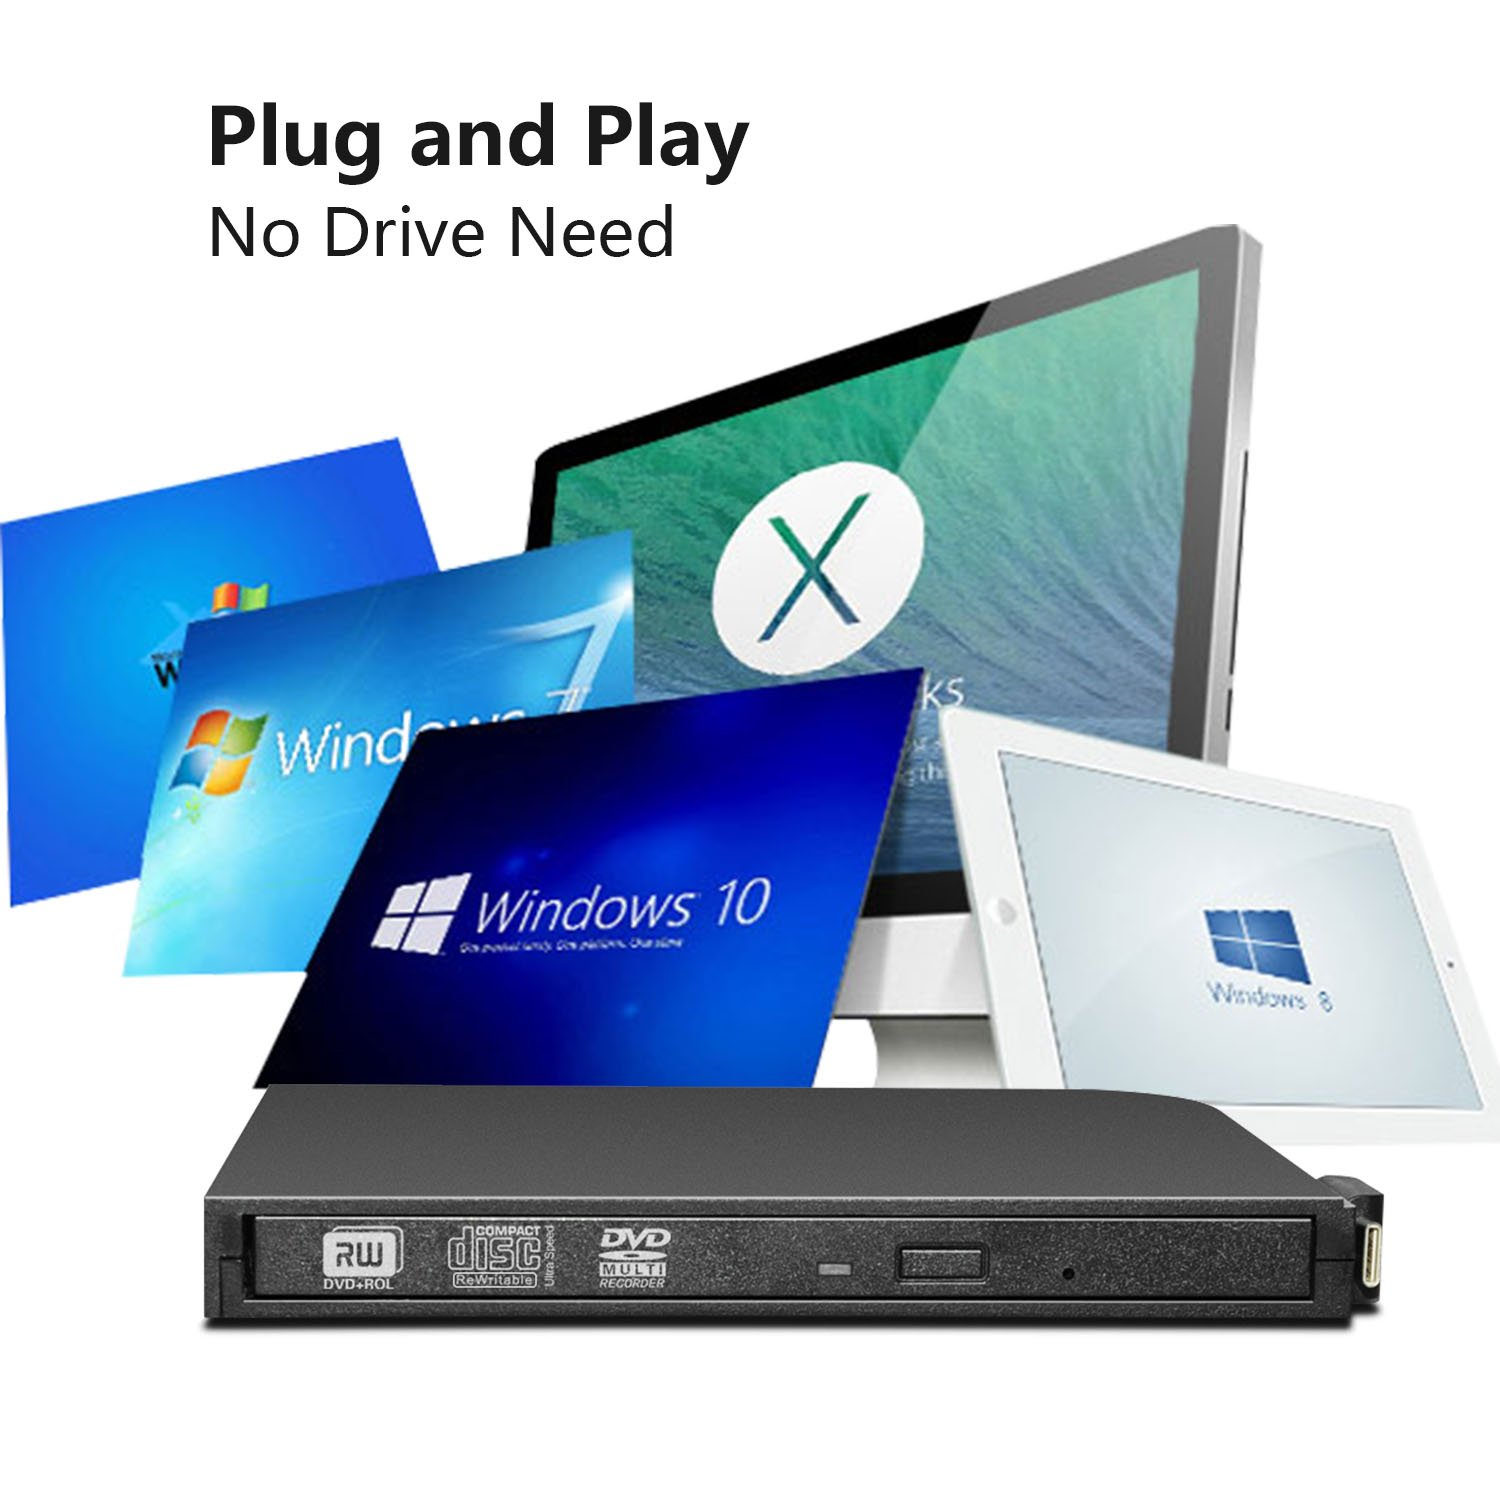 DVD Drive for PC DVD Drive computer CD Drive external dvd-rom player type-c external CD+/-RW buener USB portable DVD/CD ROM reader for various brands of desktops and laptops(not including tablets) by Juanery (Image #1)